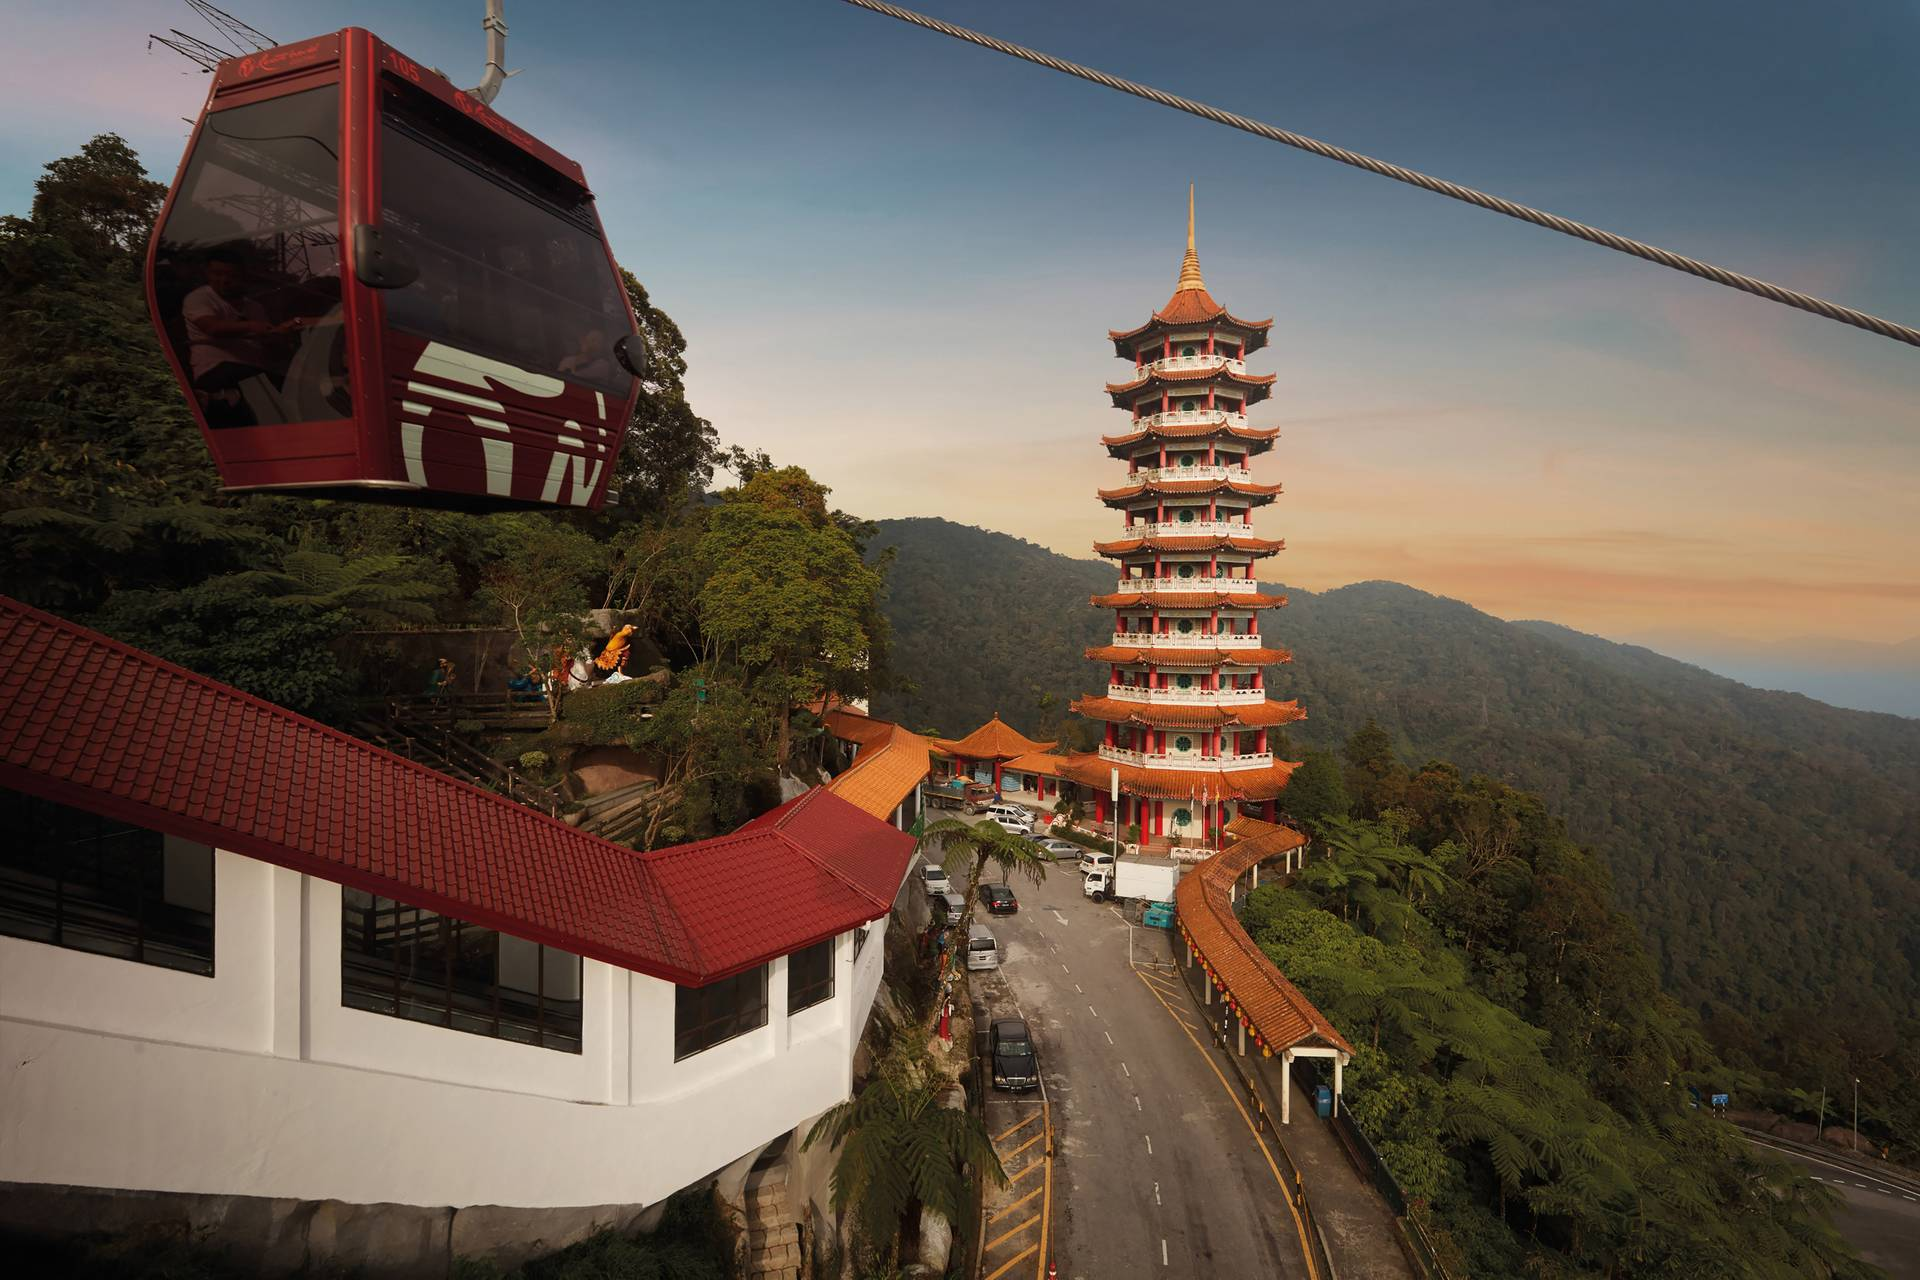 One day tour to Genting Highlands with Batu Caves from Kuala Lumpur